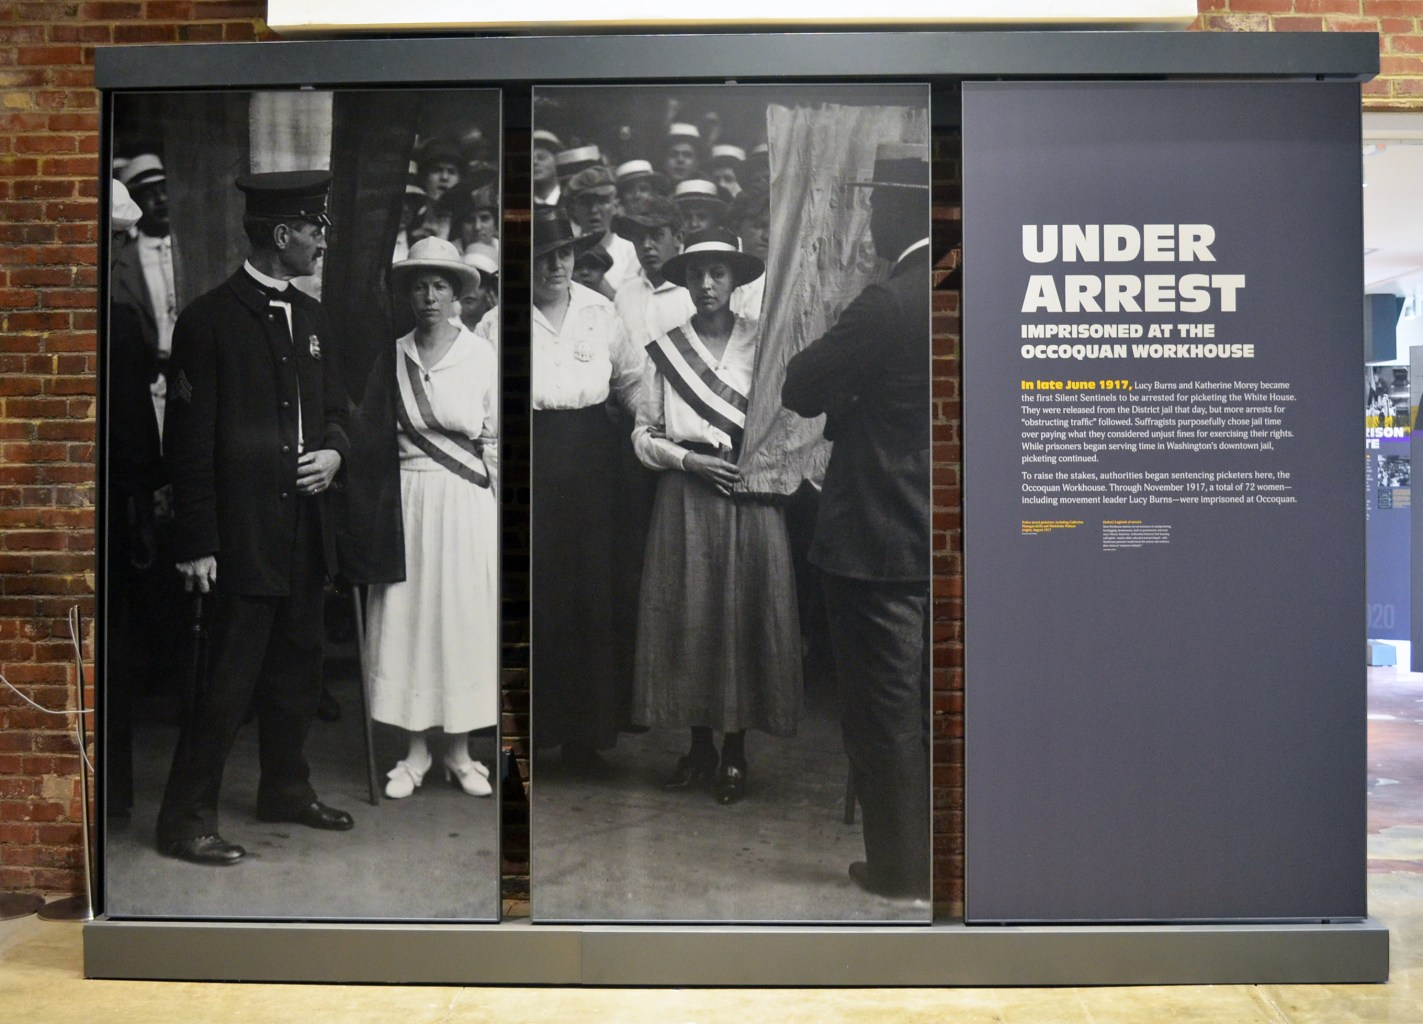 """A panel display in a museum showing photos of suffragists facing uniformed men. The text reads """"Under Arrest: Imprisoned at the Occoquan Workhouse."""""""